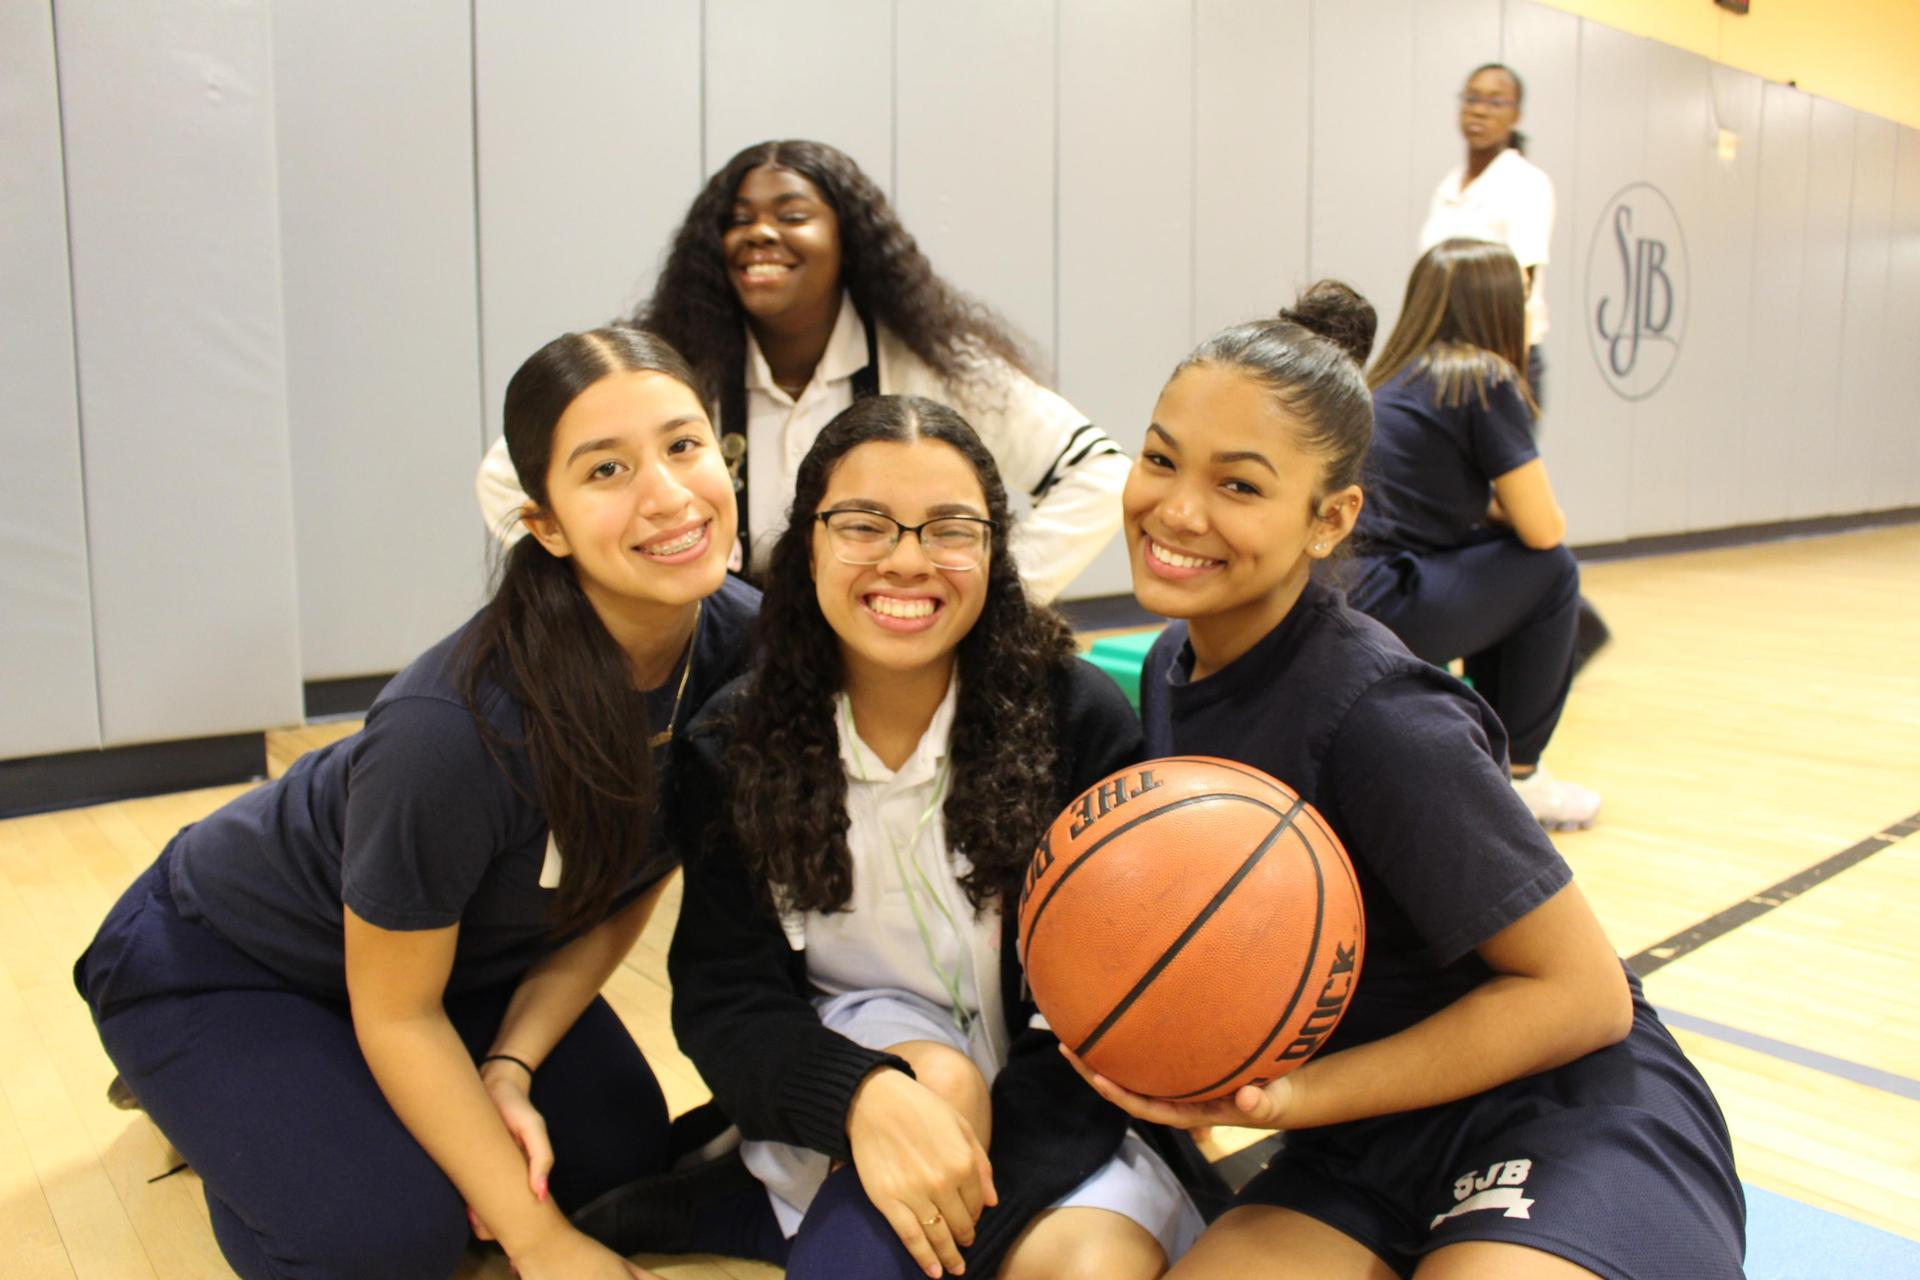 three girls in blue gym cloths one holds a basketball. one girl in white sweater in the background